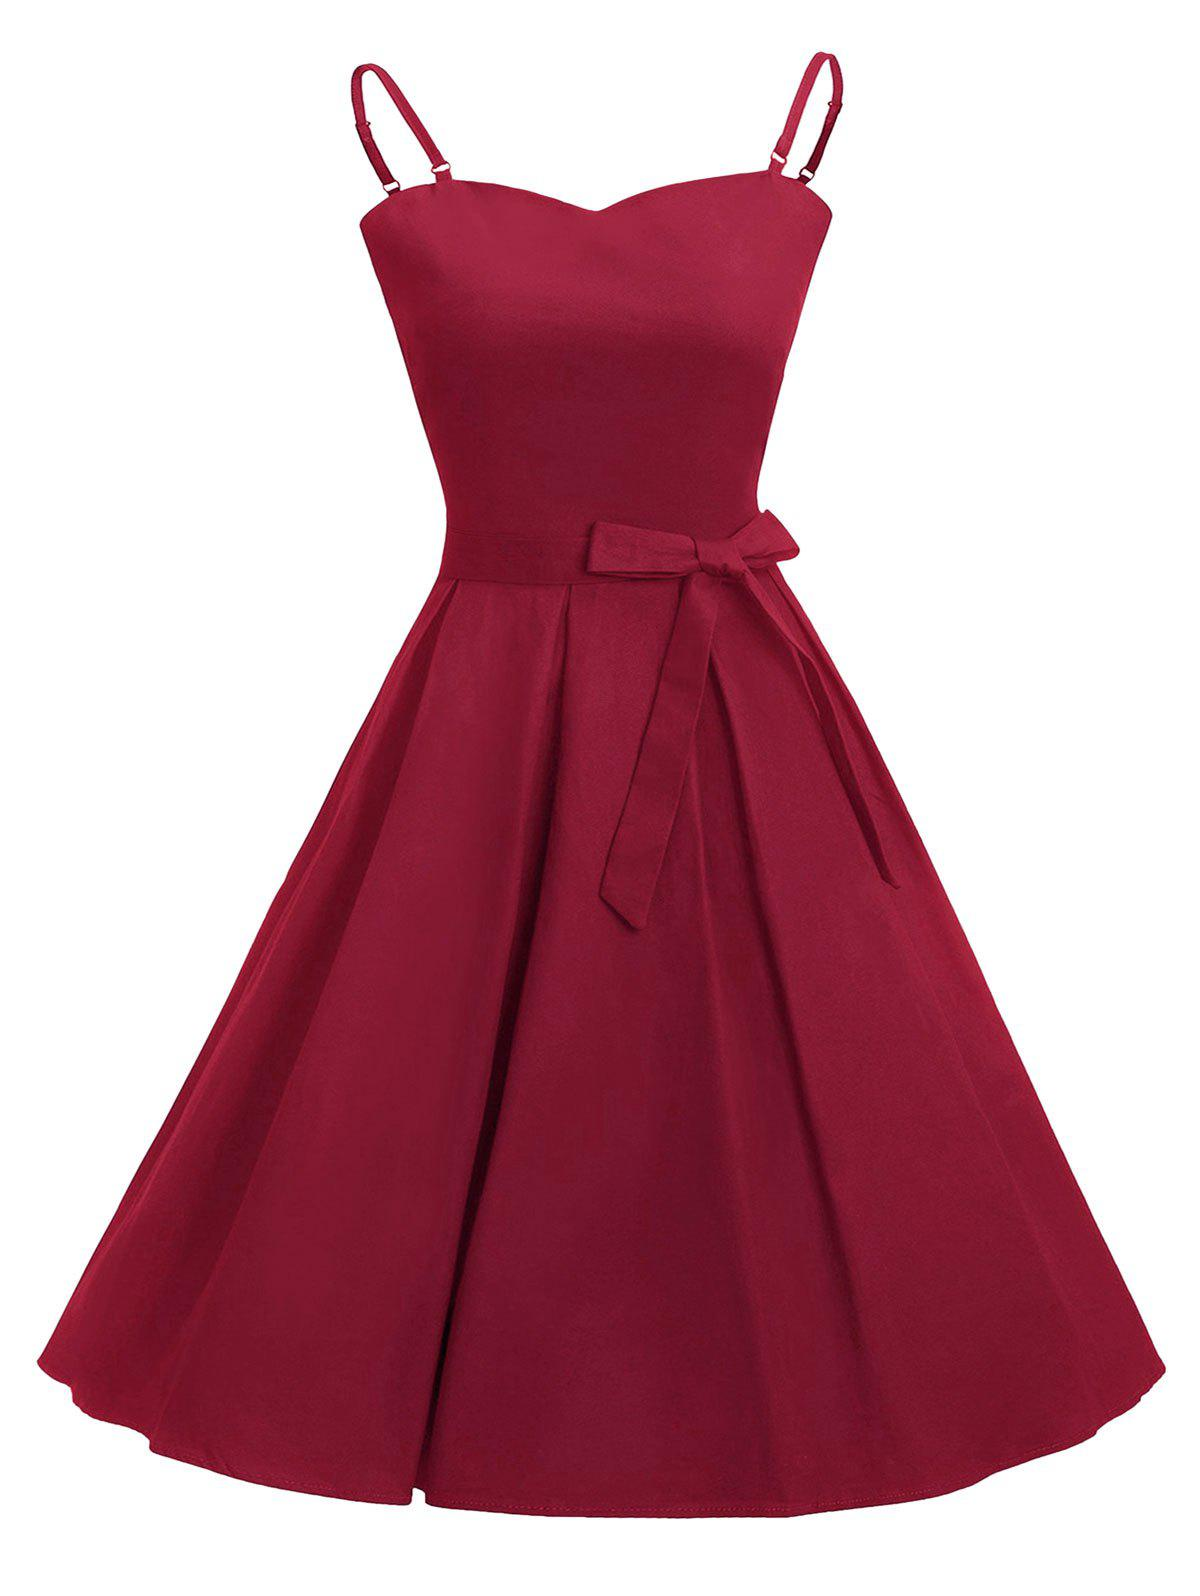 Spaghetti Strap Belted Rockabilly Style Vintage Dress - RED WINE M